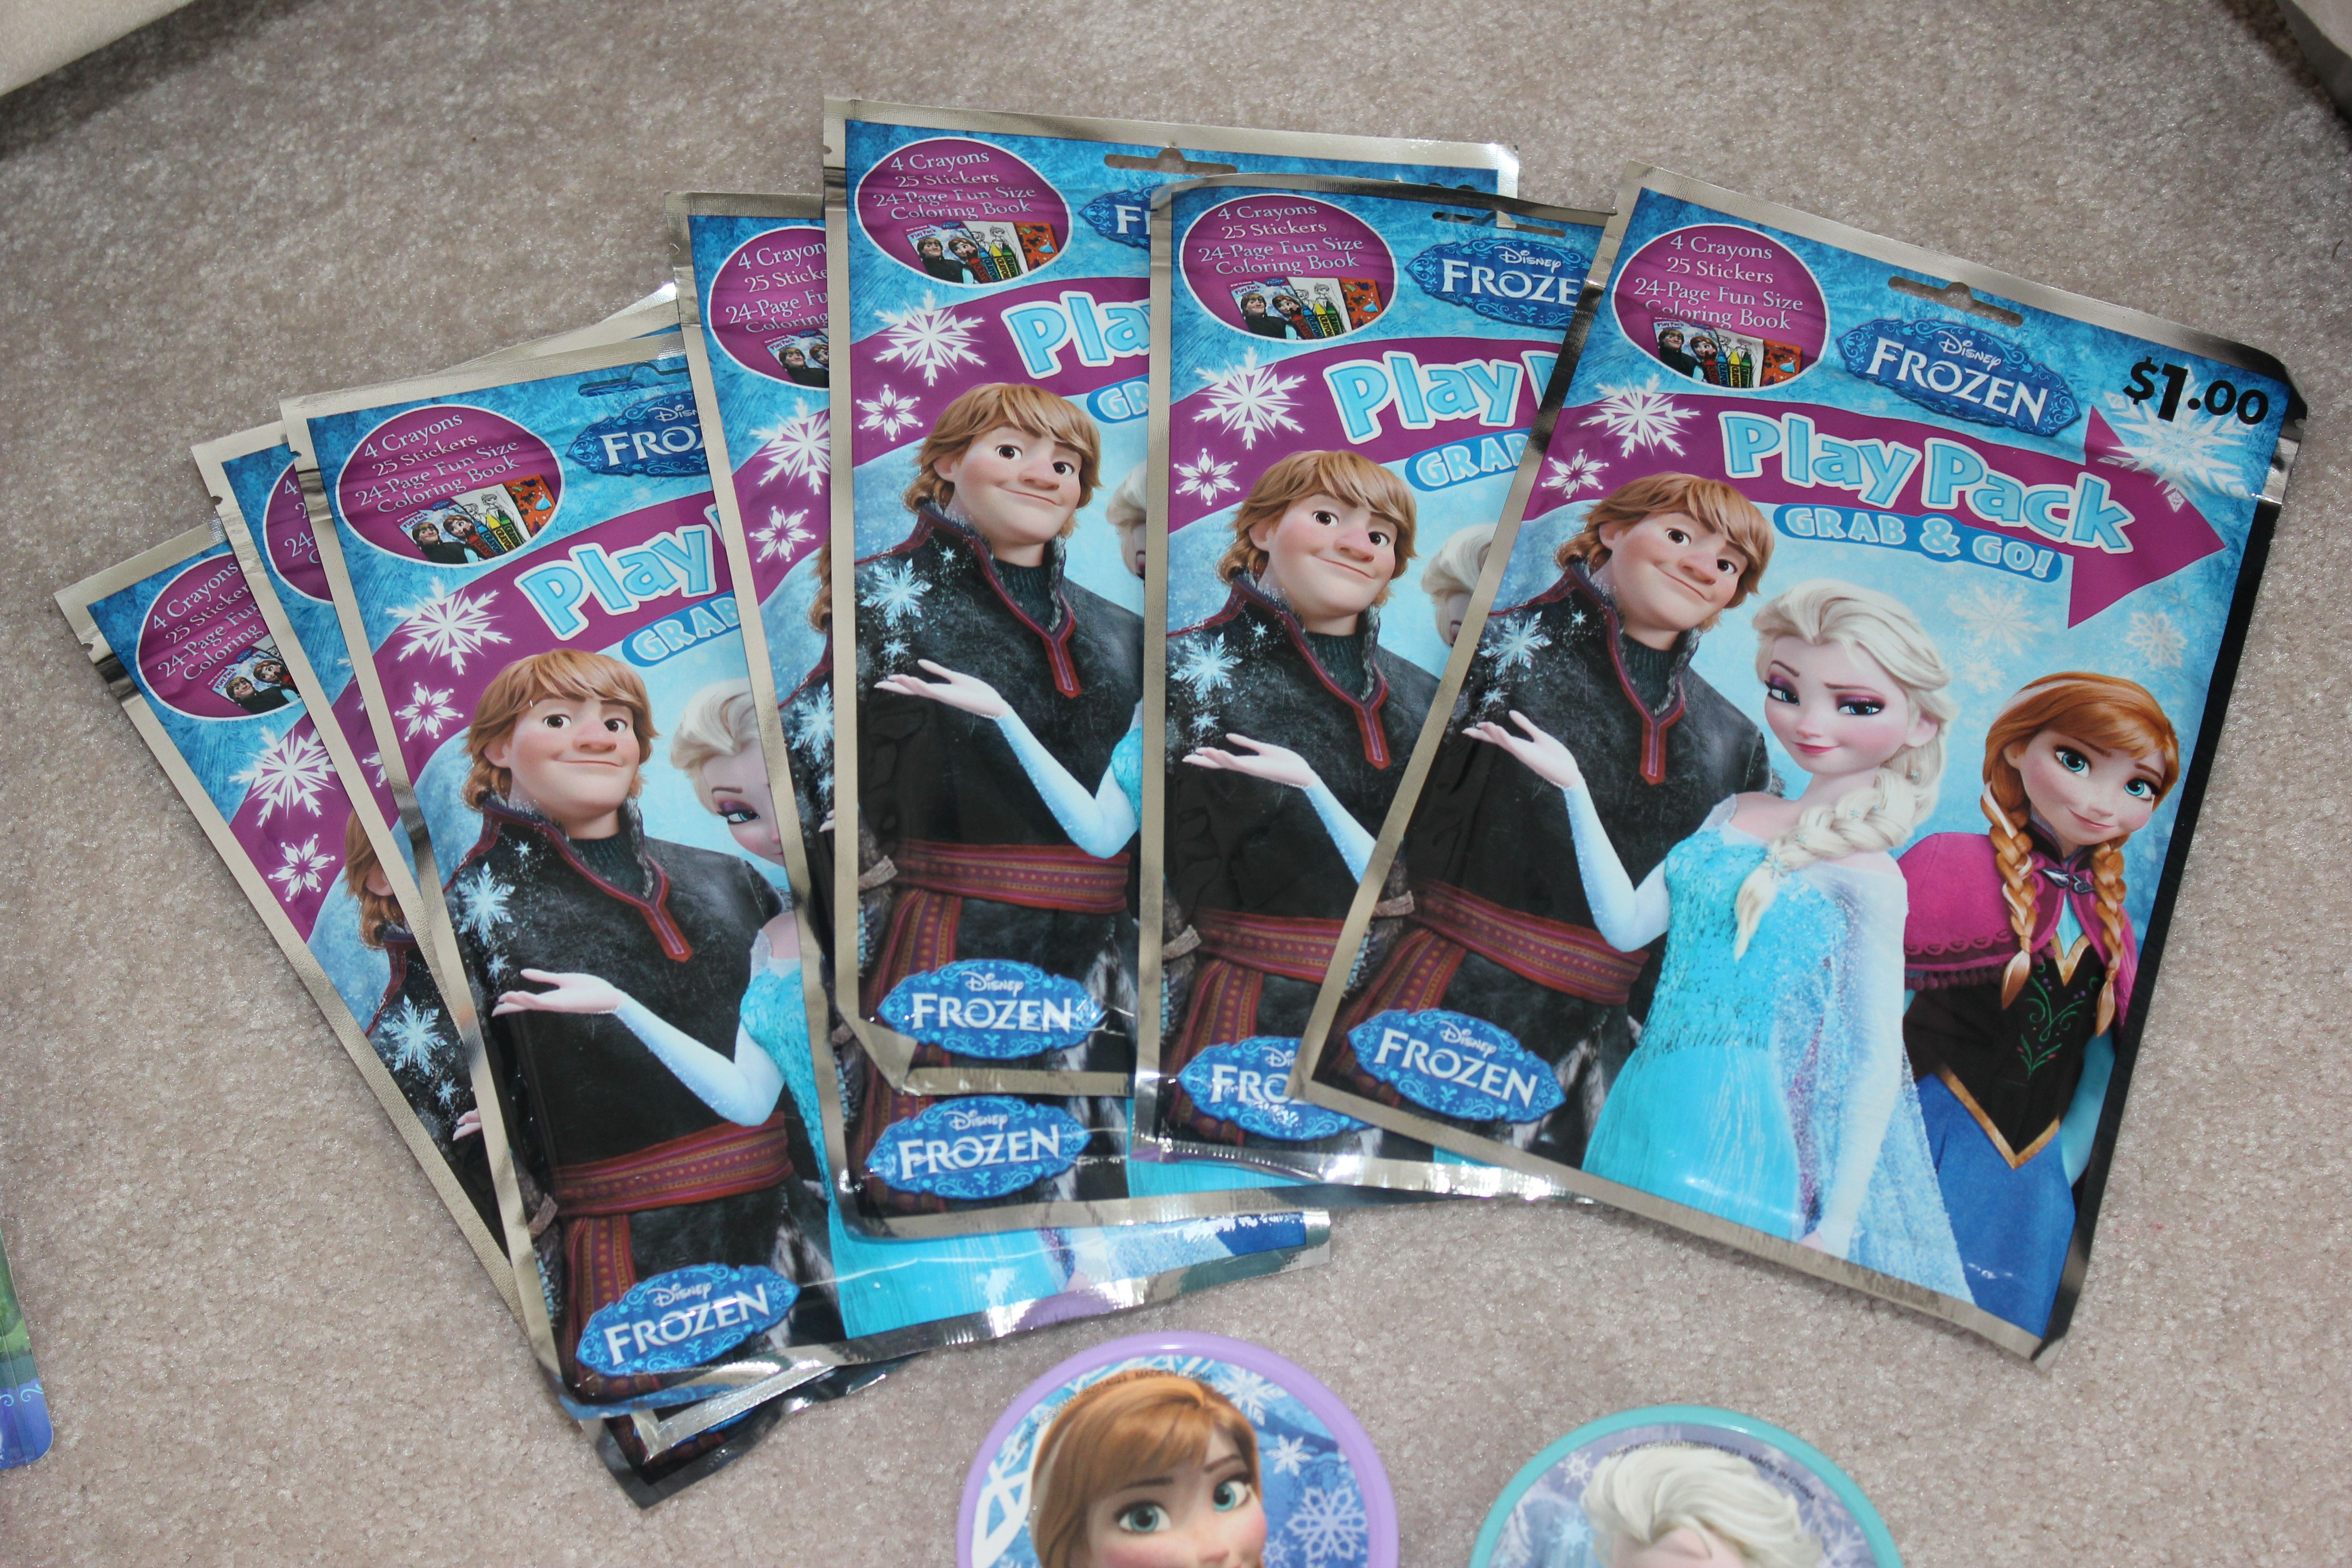 Frozen Birthday Party Favors Frozen Play Packs From Dollarama And Michaels Frozen Themed Birthday Party Sofia The First Birthday Party Frozen Birthday Party